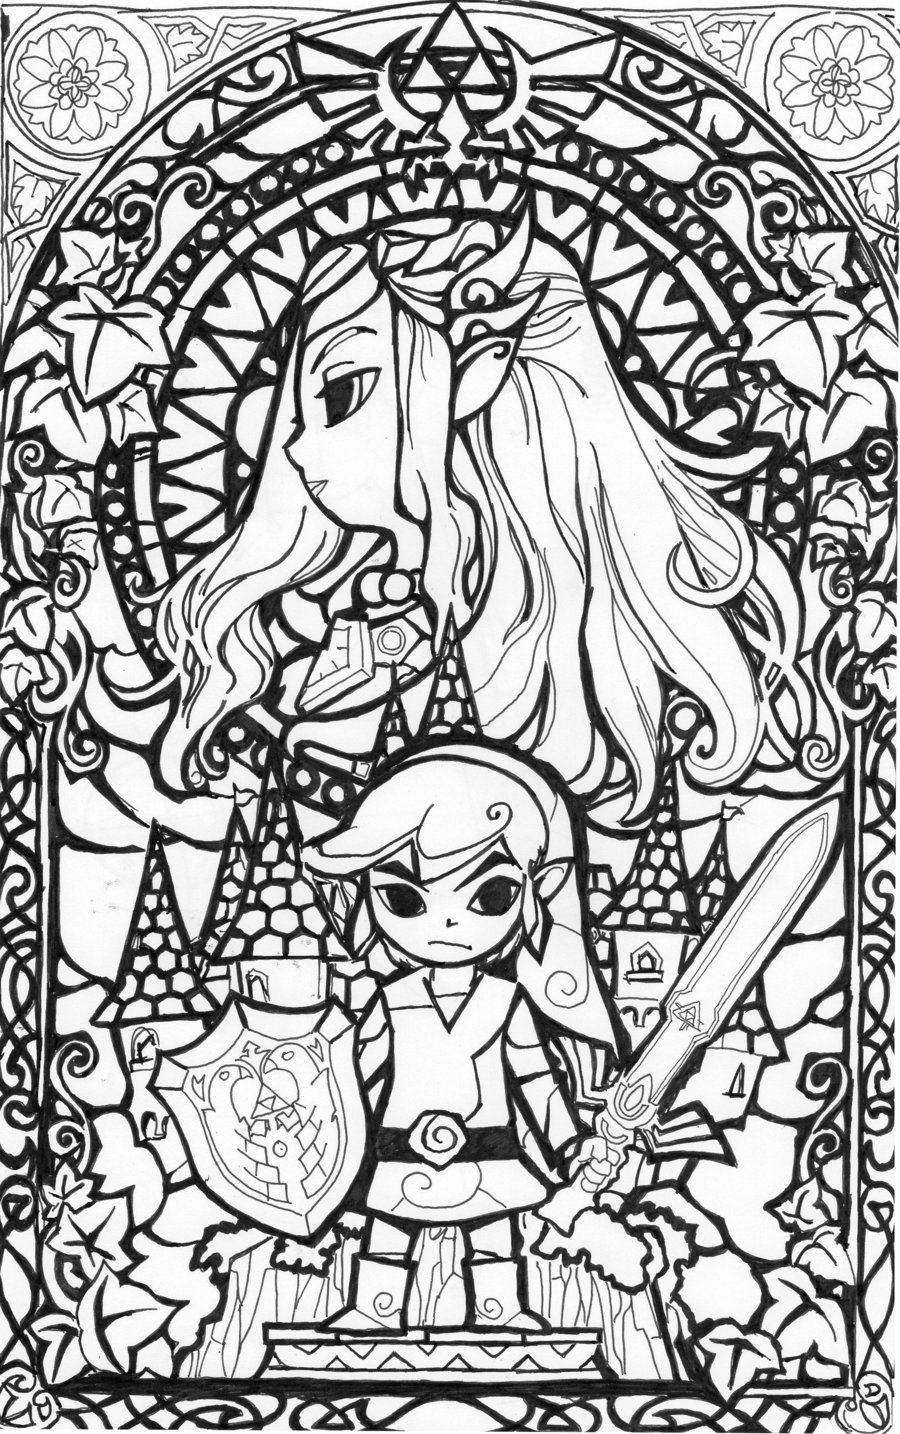 awesome stained glass zelda coloring page gonna try this in watercolors later - Zelda Coloring Pages